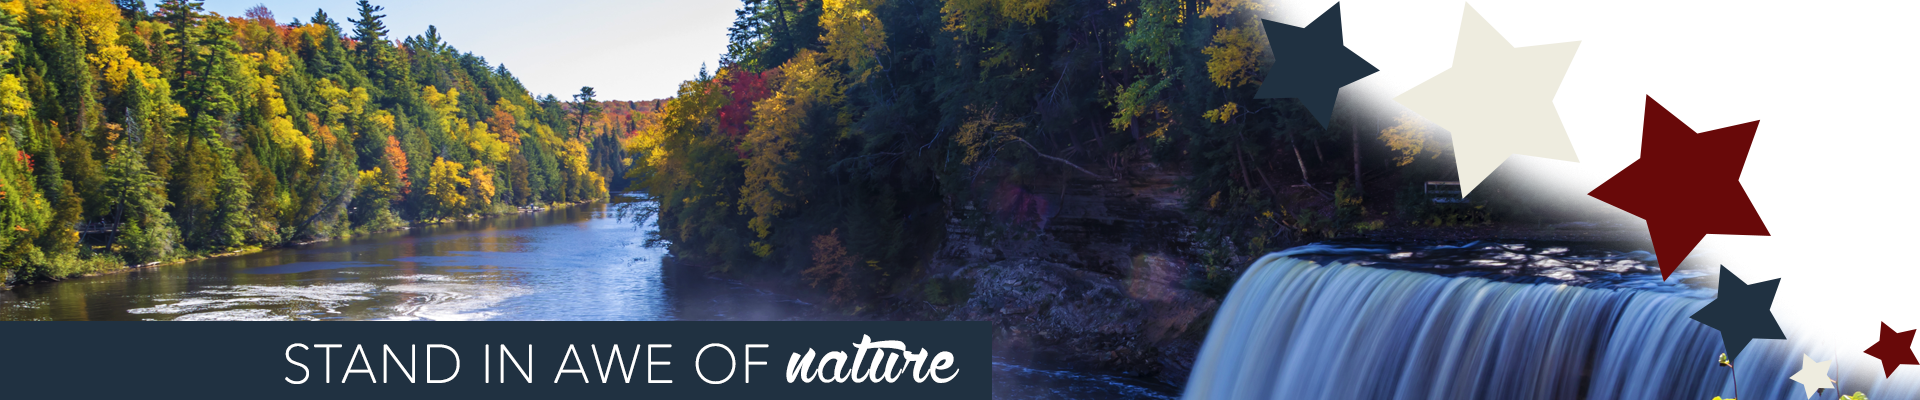 Stand in awe of nature at Tahquamenon Falls State Park